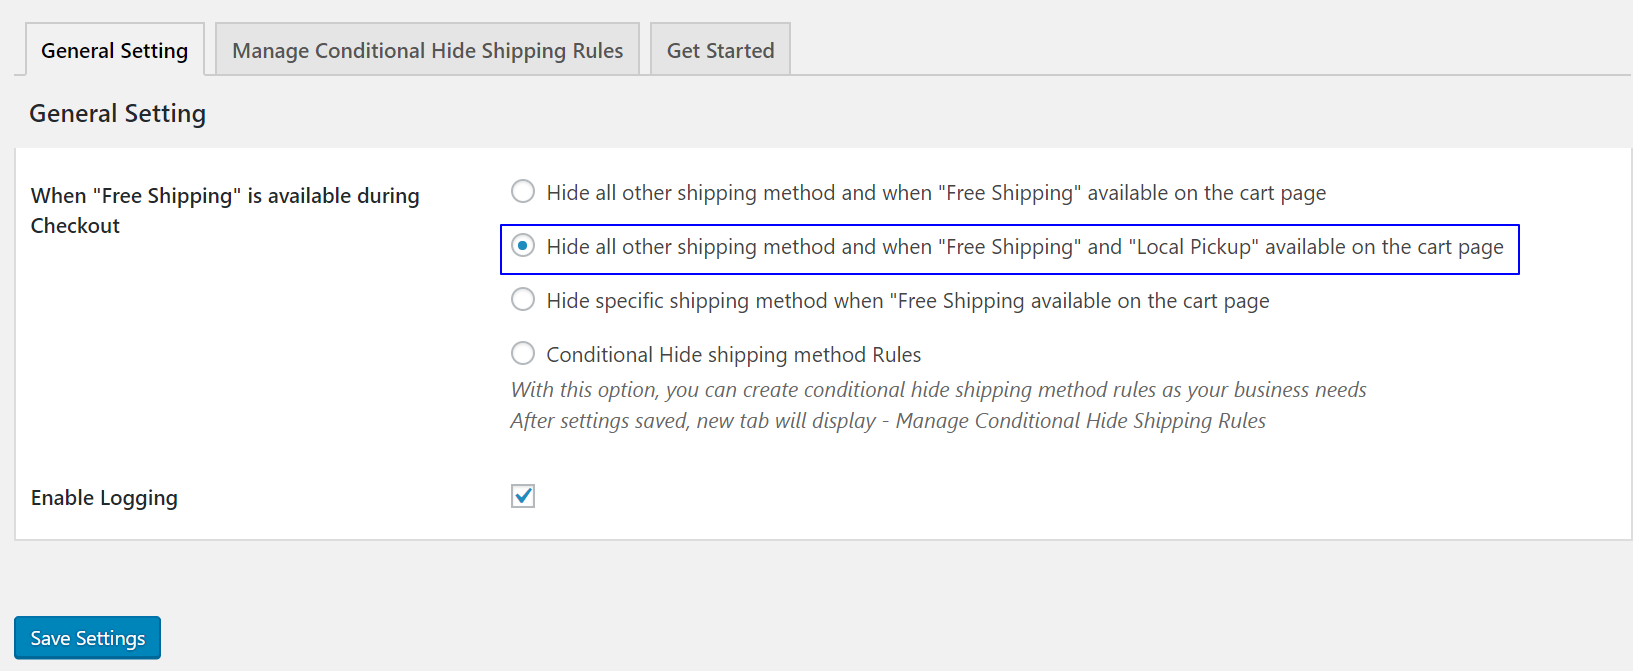 How to hide all other shipping methods when Free Shipping and Local Pickup available on the cart page